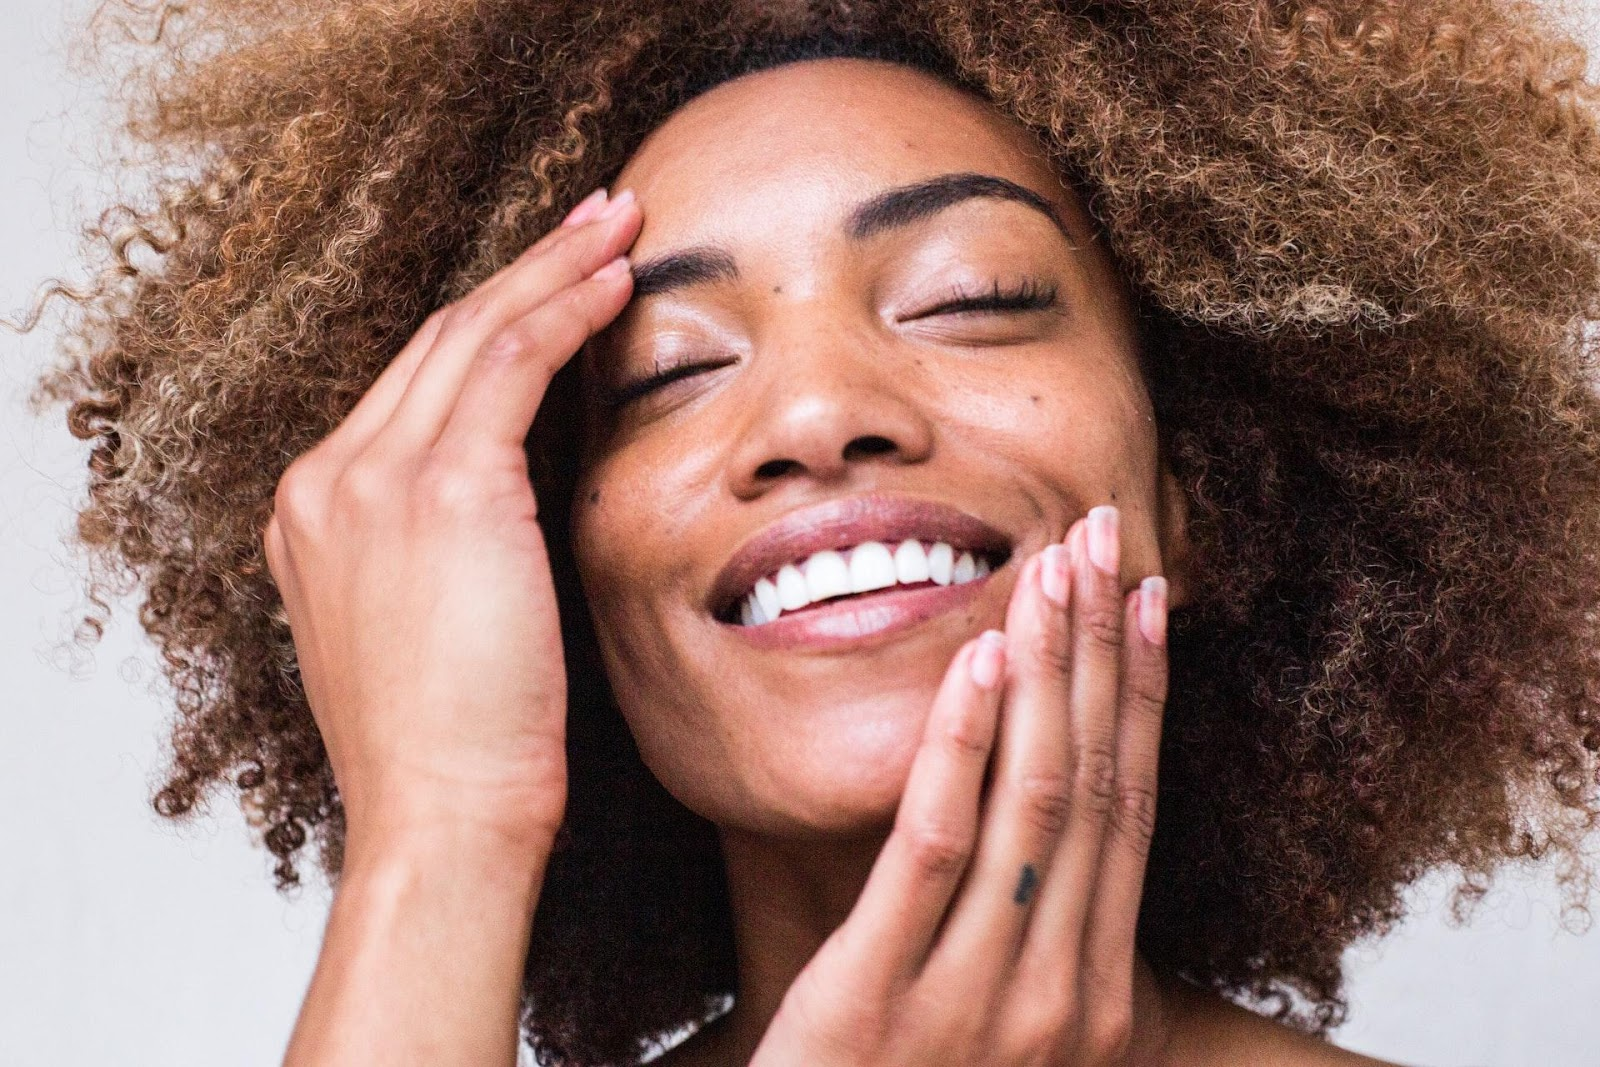 A person smiling with her hands on her face  Description automatically generated with low confidence